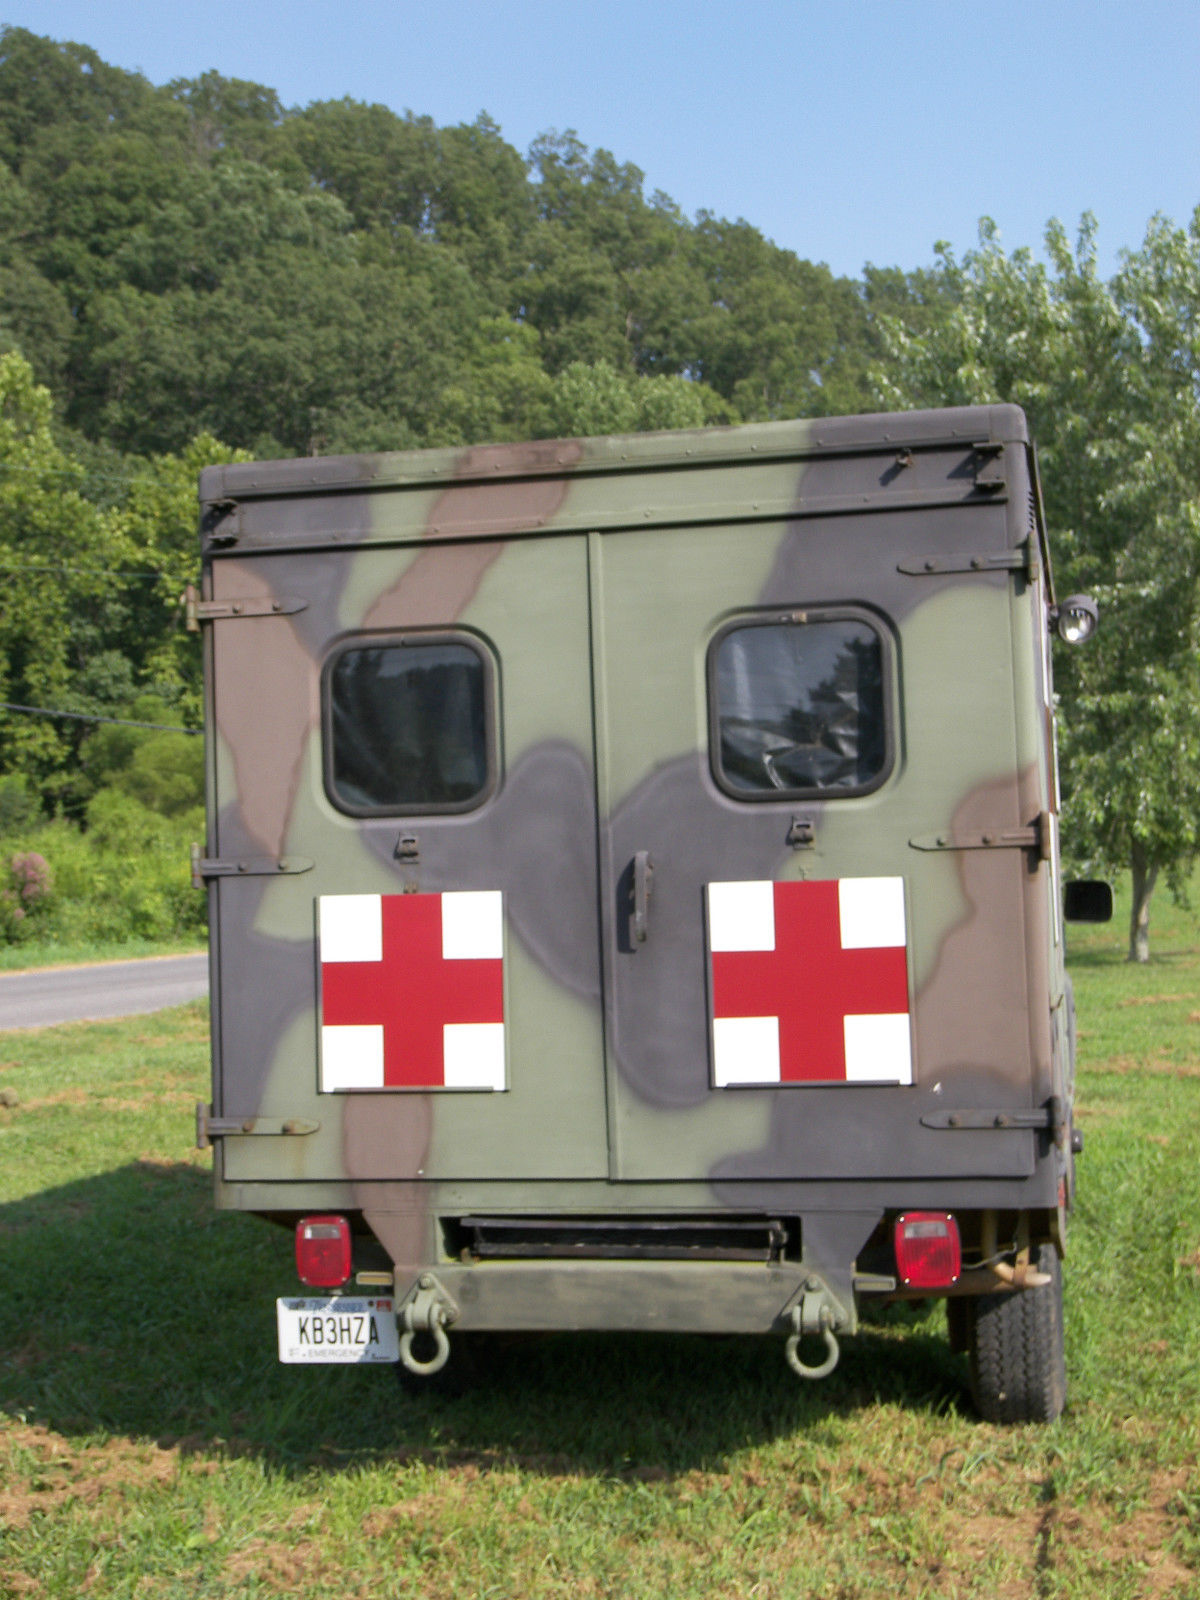 1984 Chevy M1010 4x4 Army Ambulance for sale in Jonesborough